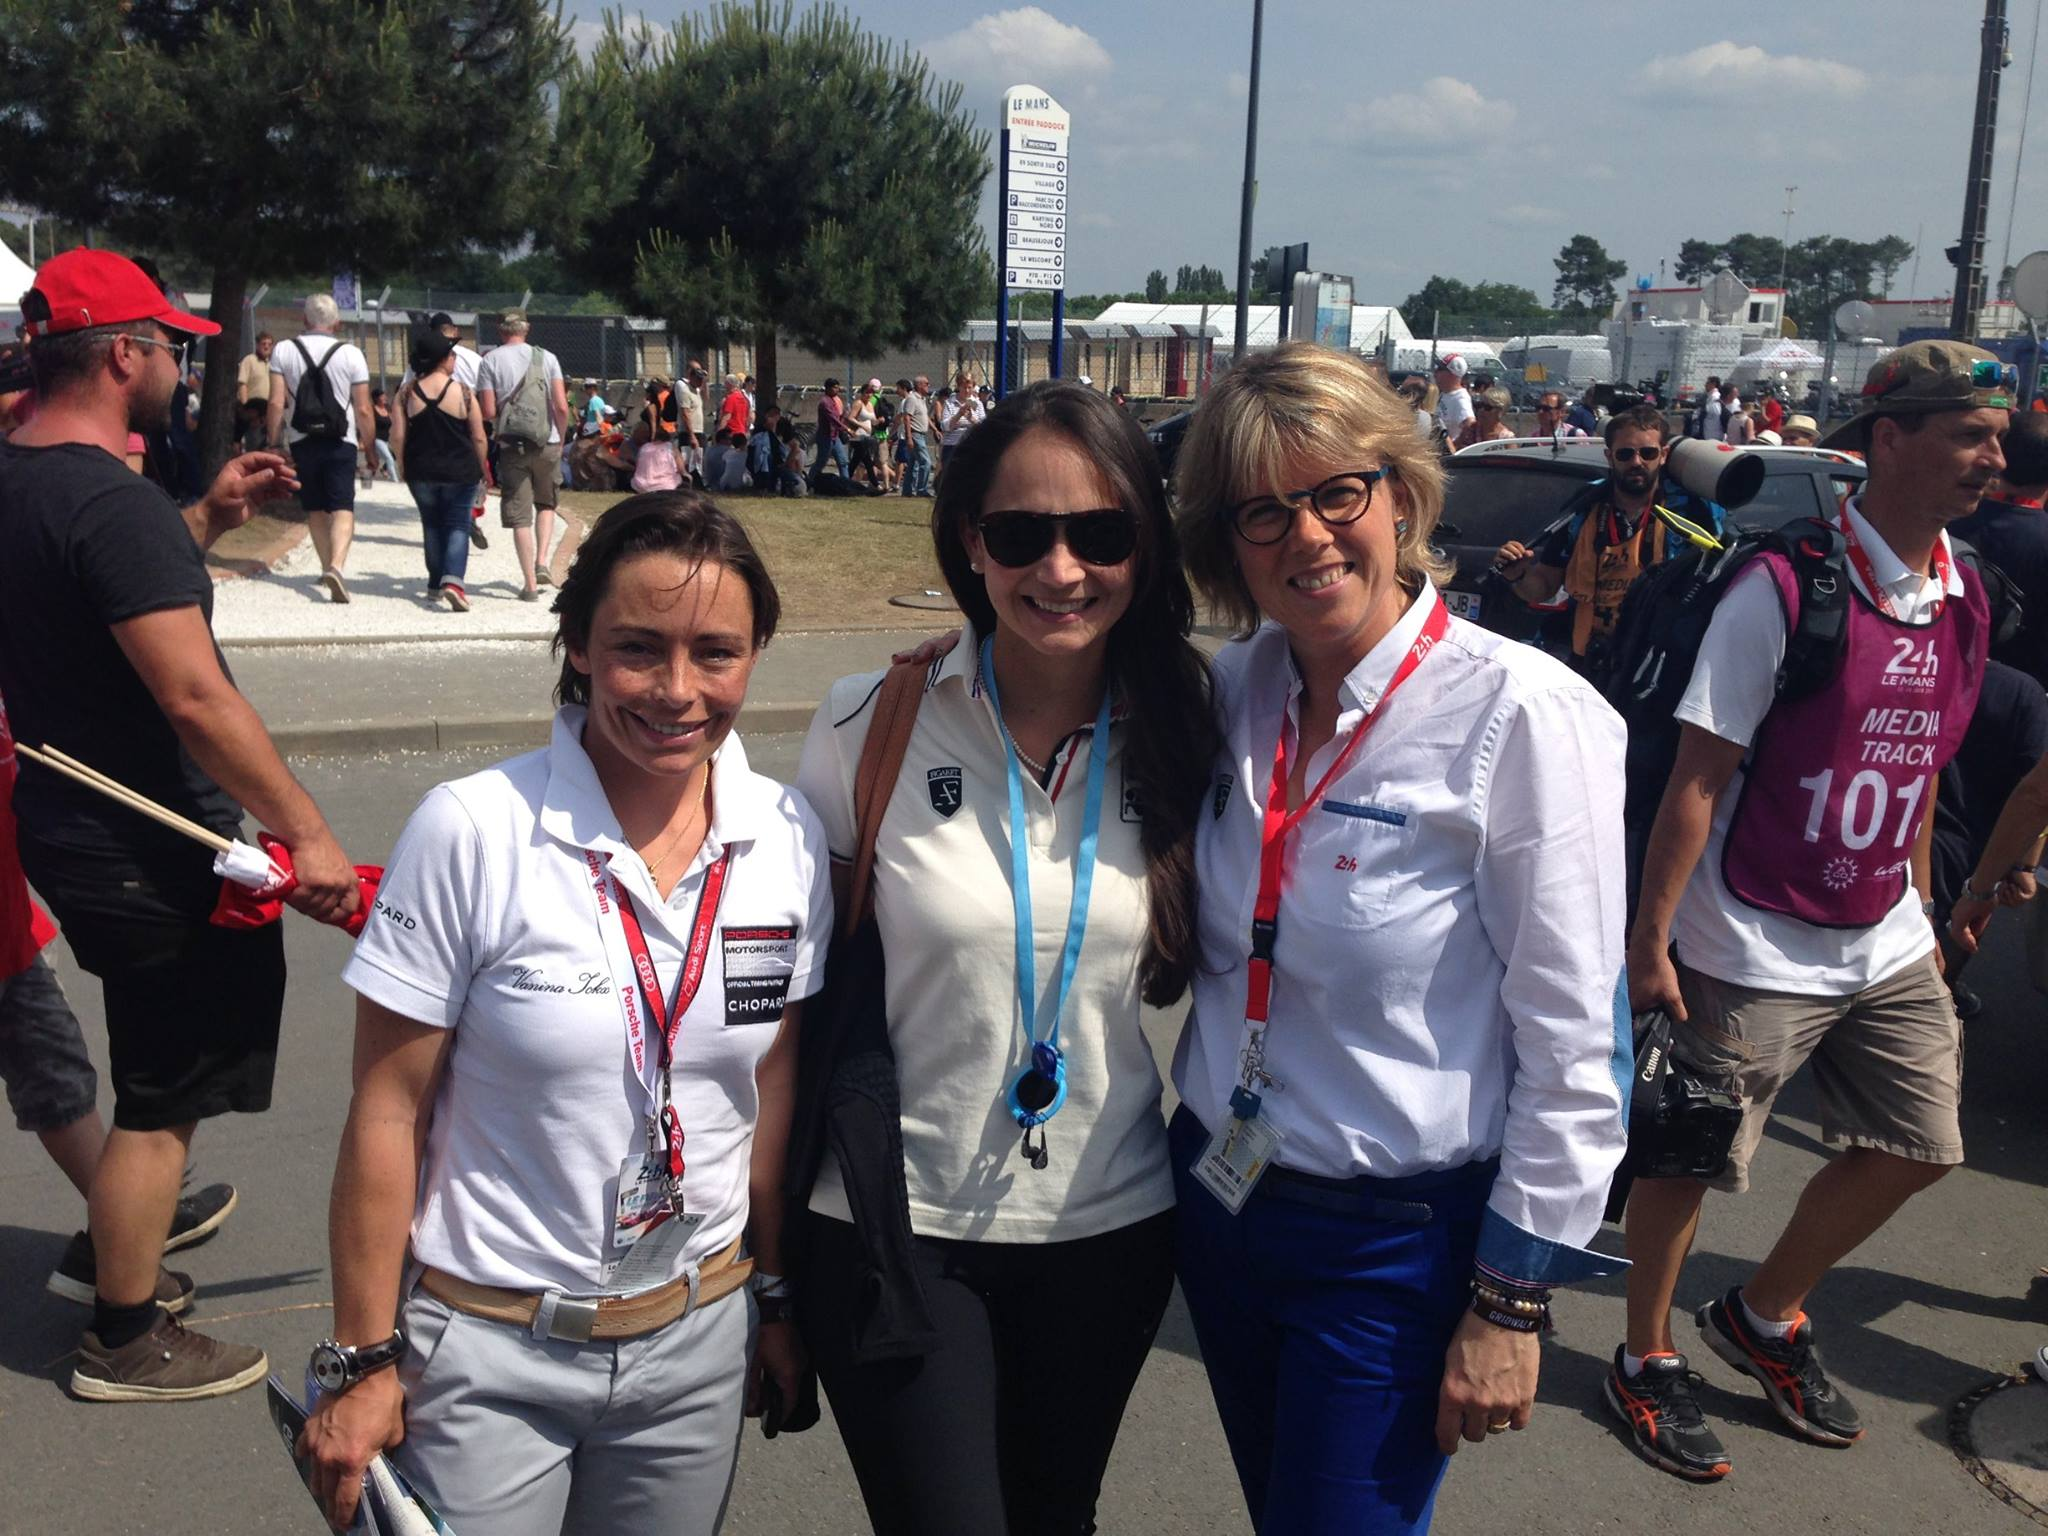 In 2015 we met Vanina Ickx briefly. Photo from own collection with Inge and Vanina.